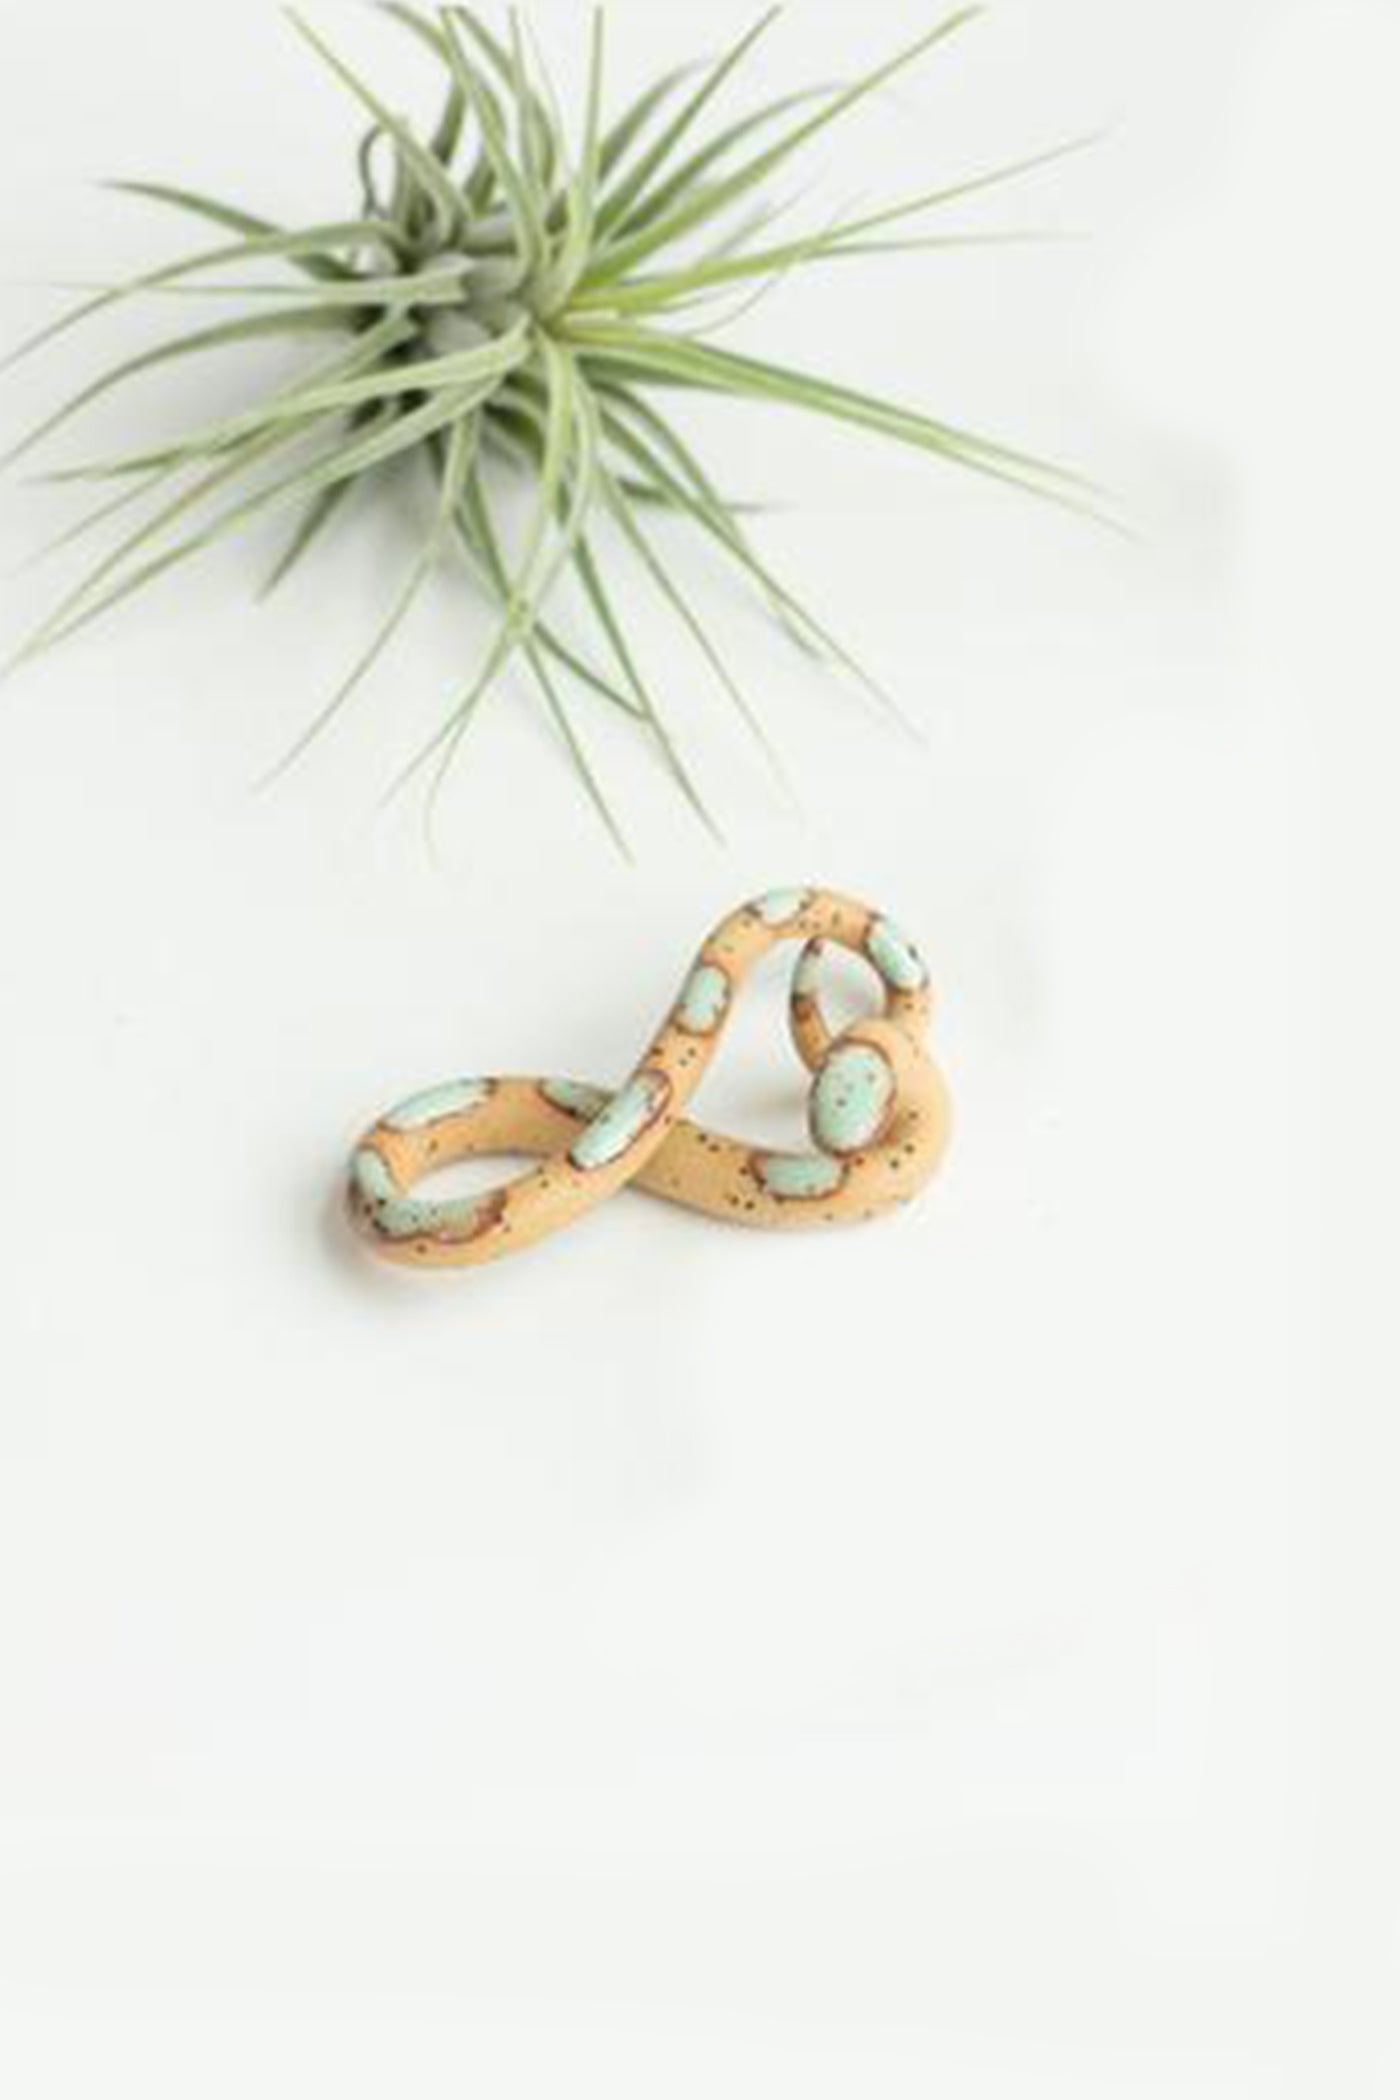 Ceramic Snake by For Good